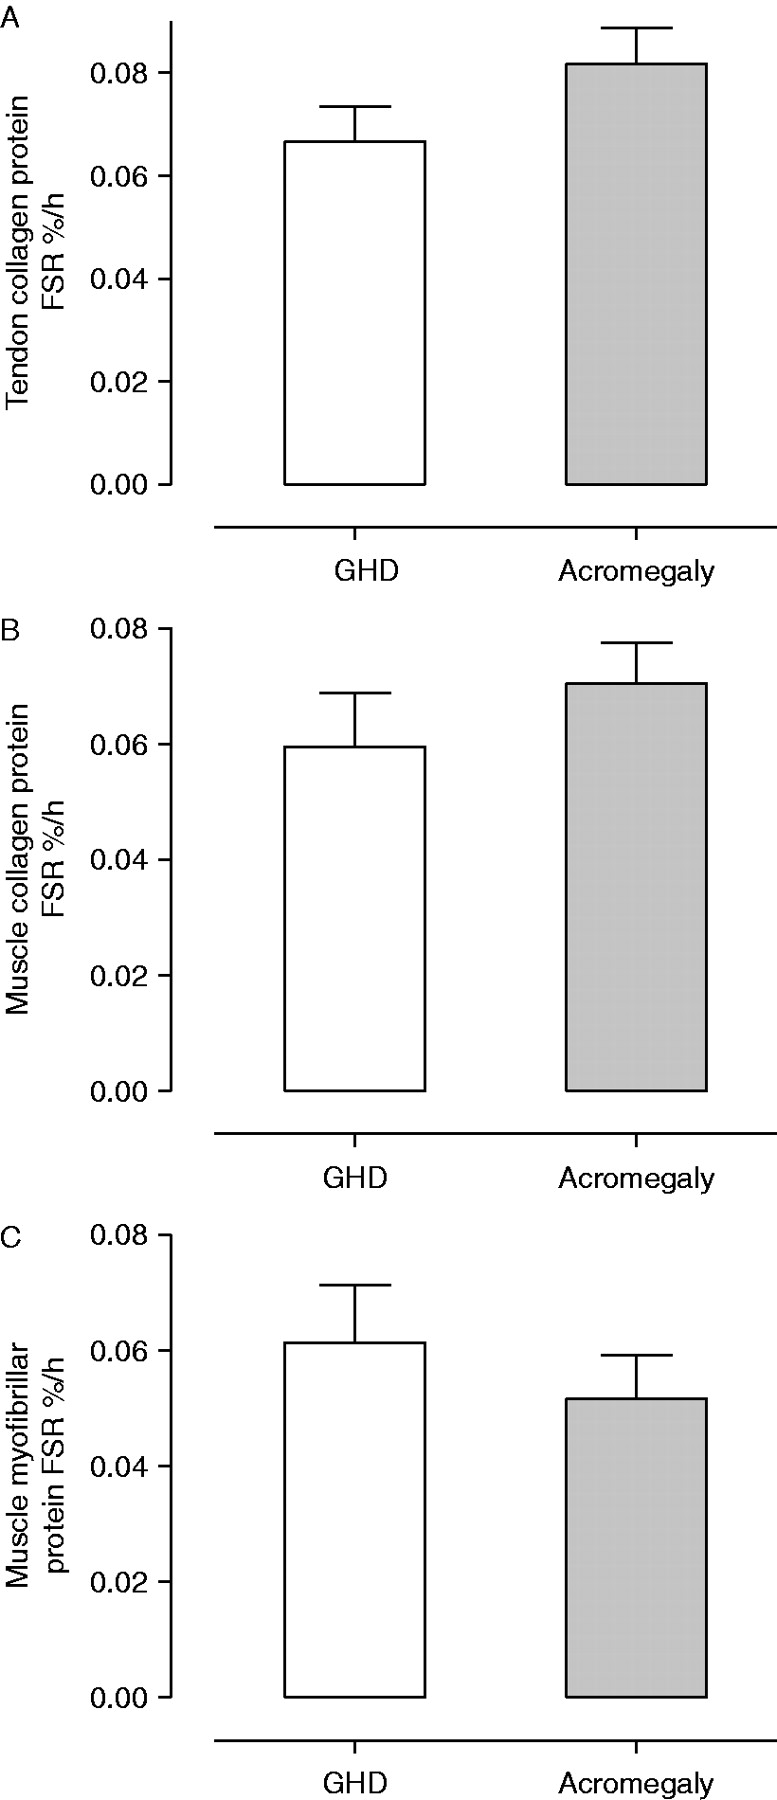 GH and IGF1 levels are positively associated with